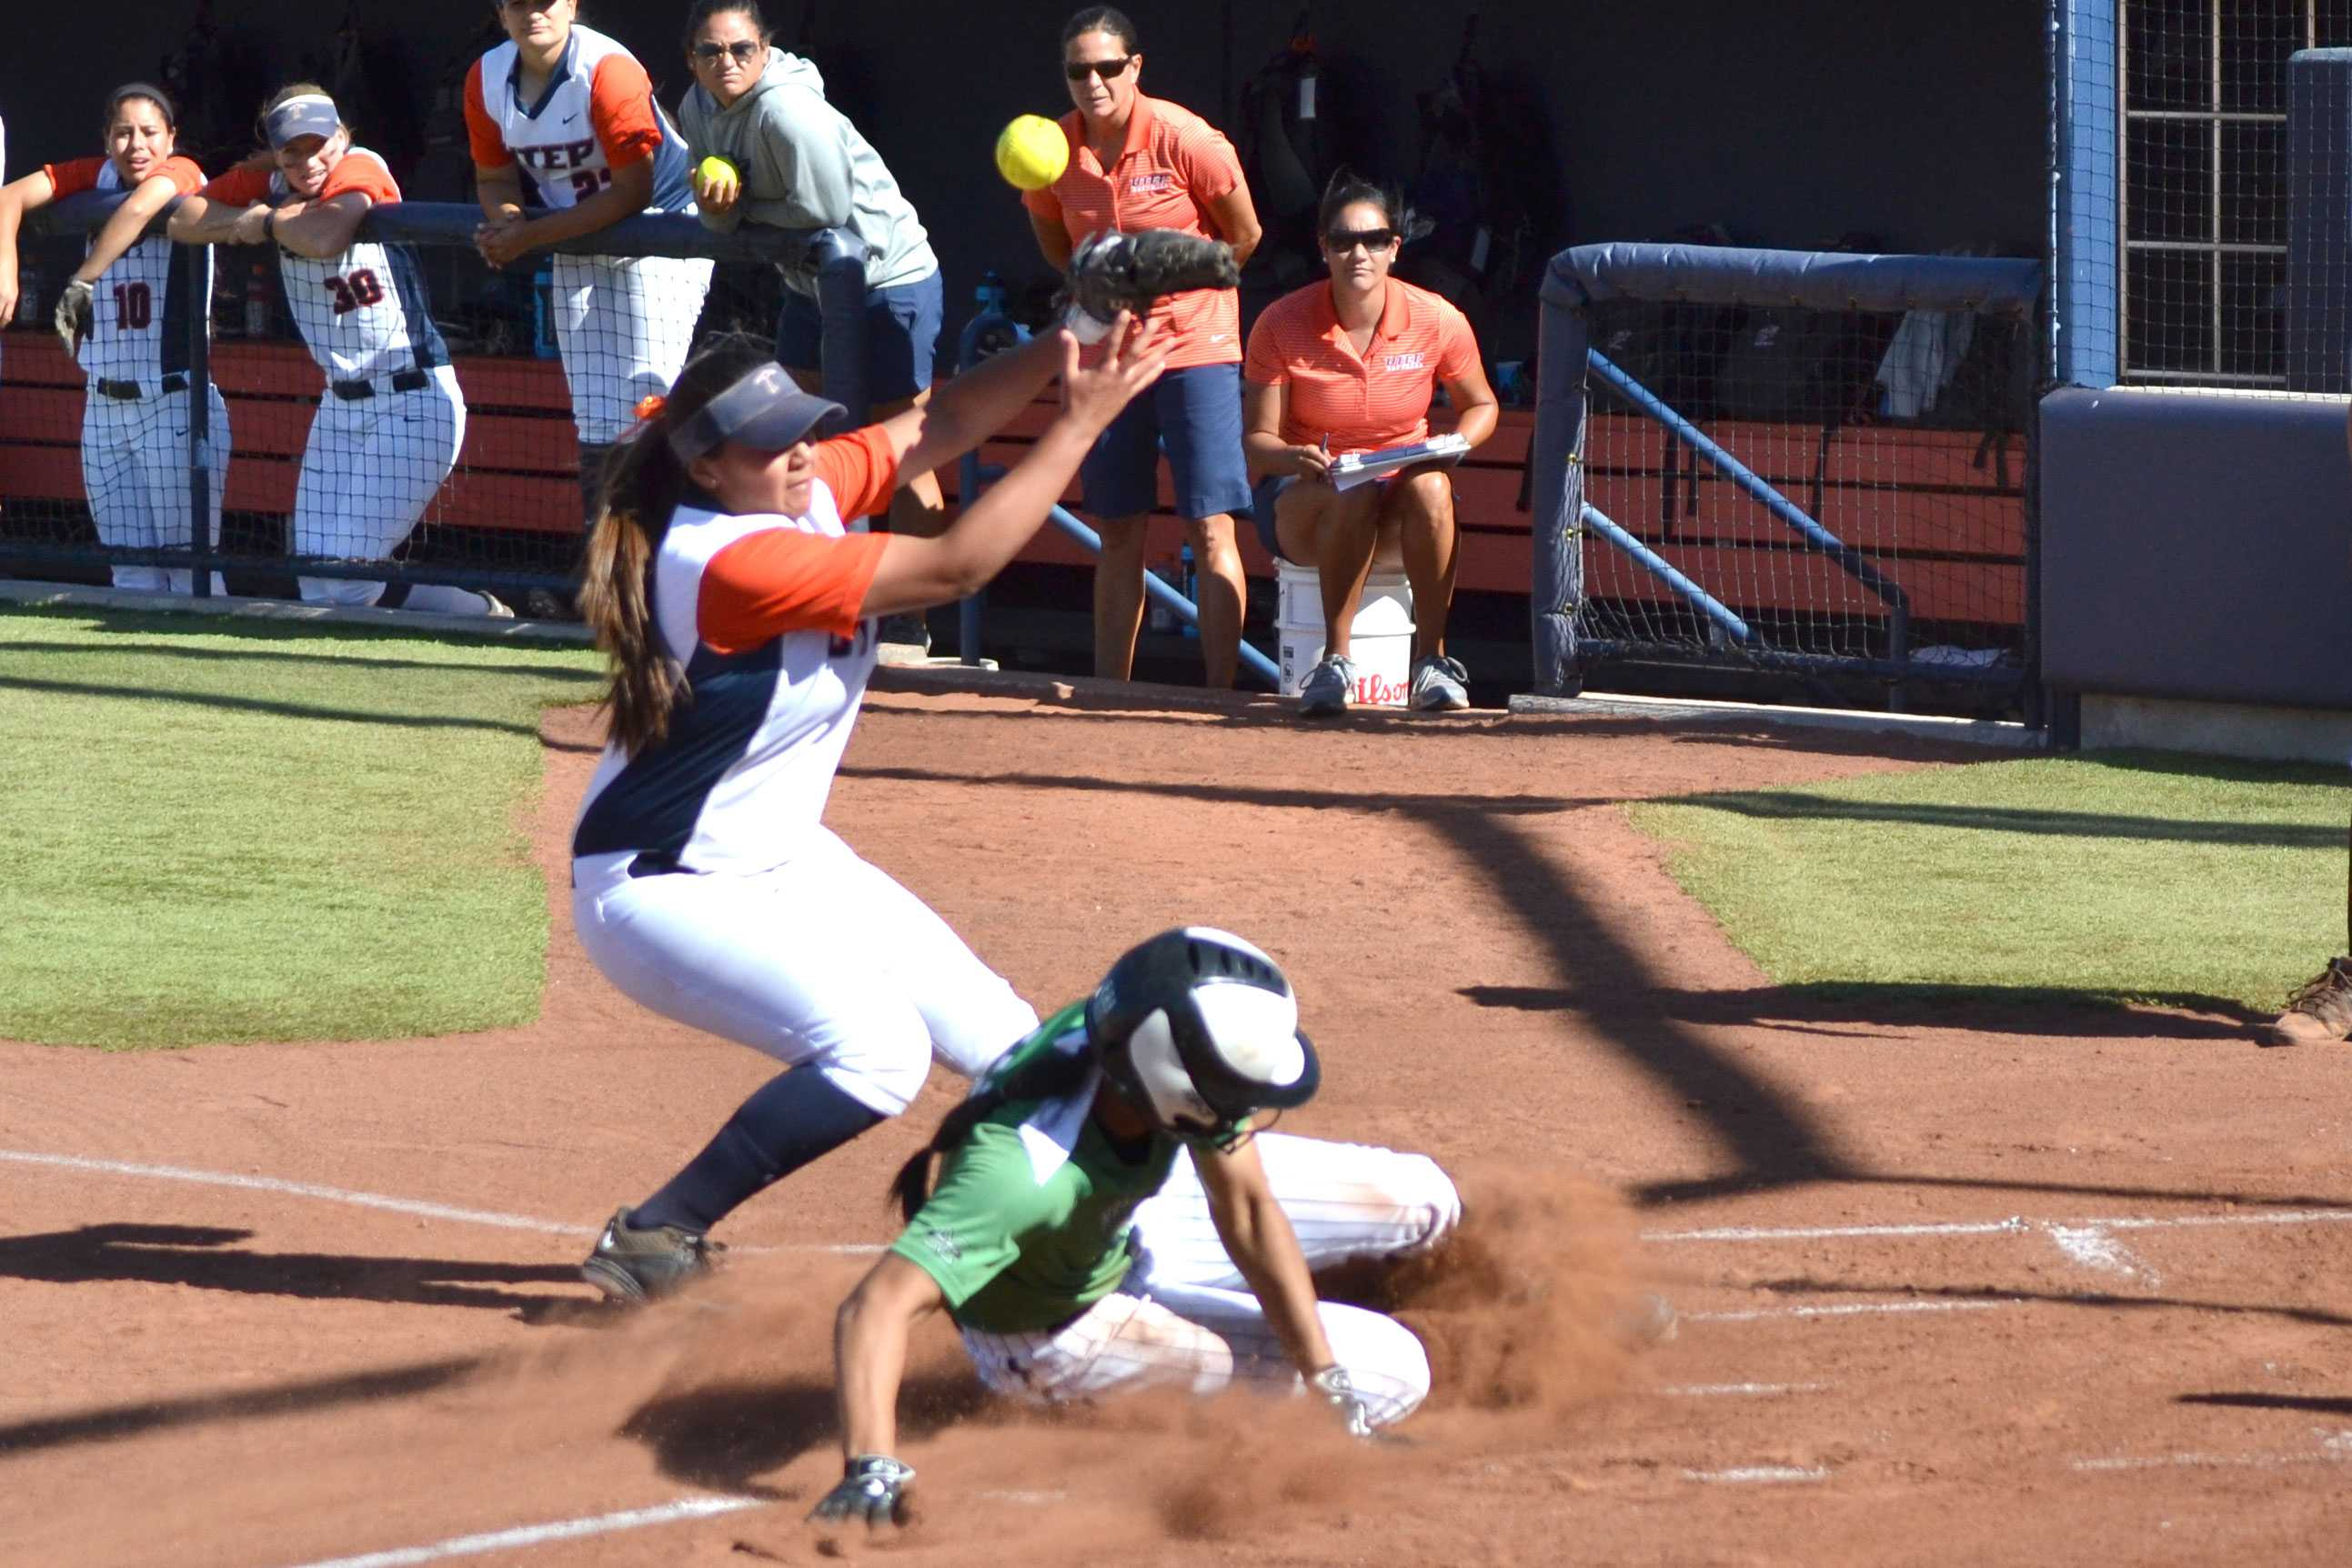 The UTEP softball team lost the final of three games against Marshall, even though the game was stopped early and the score was tied at seven.